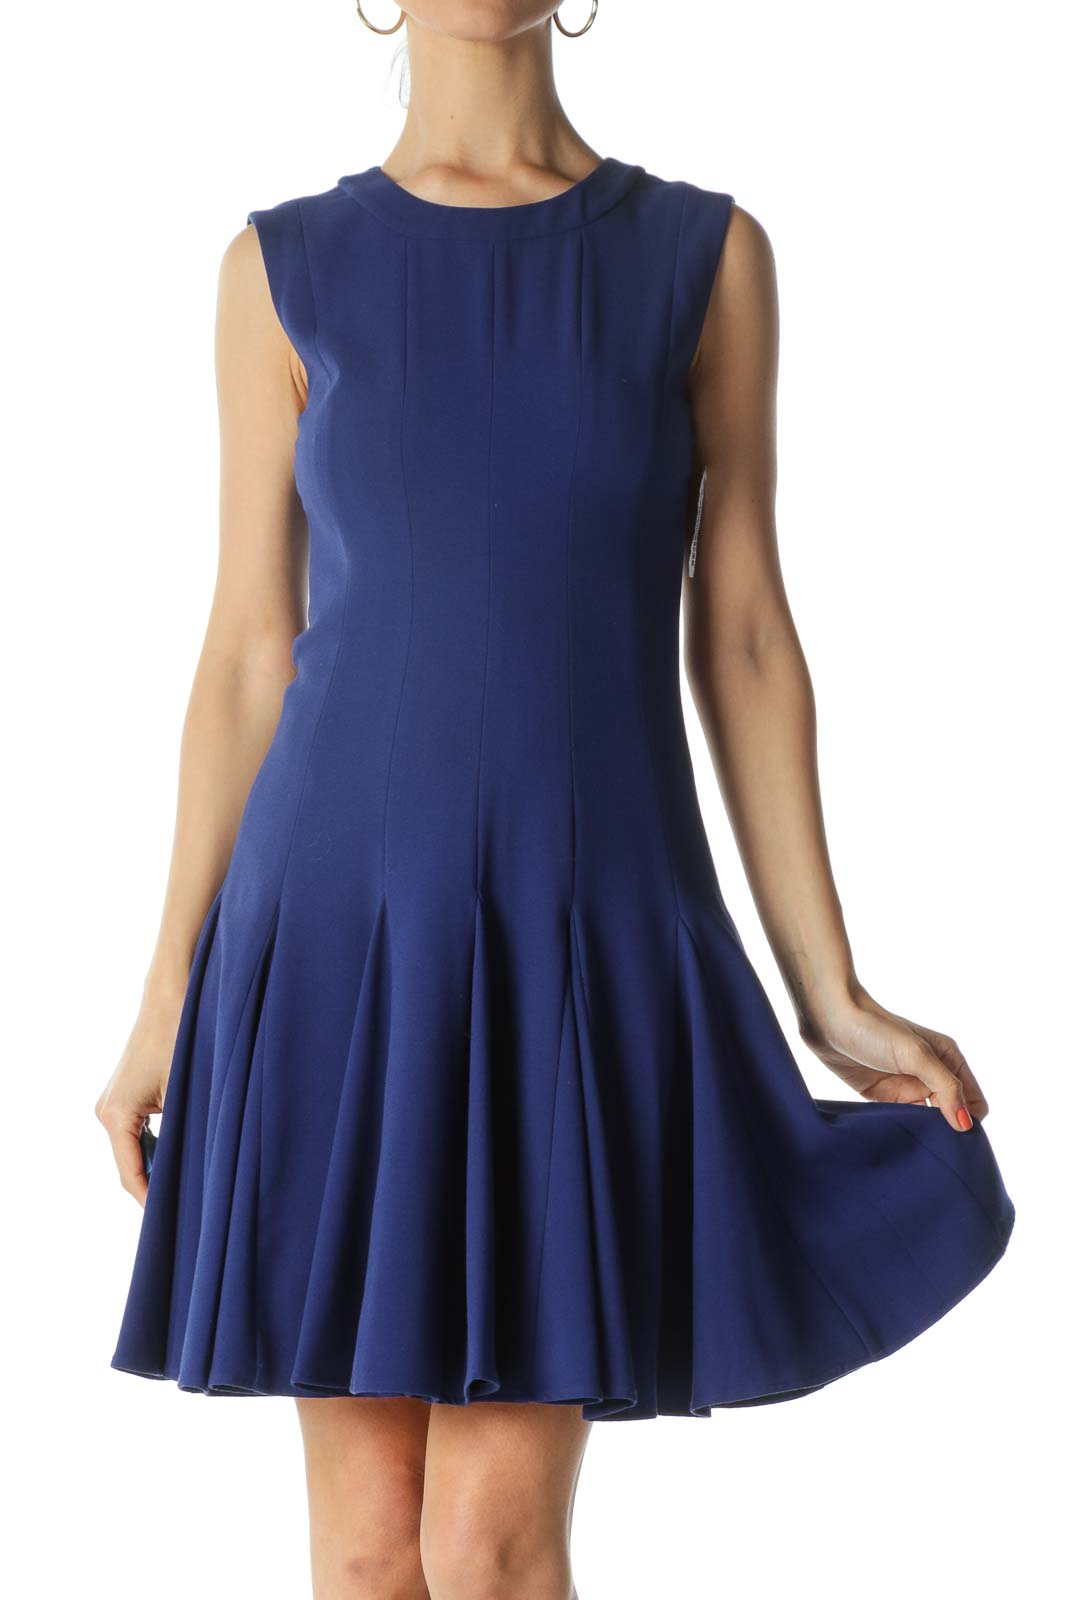 Blue Round-Neck Sleeveless Pleated-Bottom Work Dress